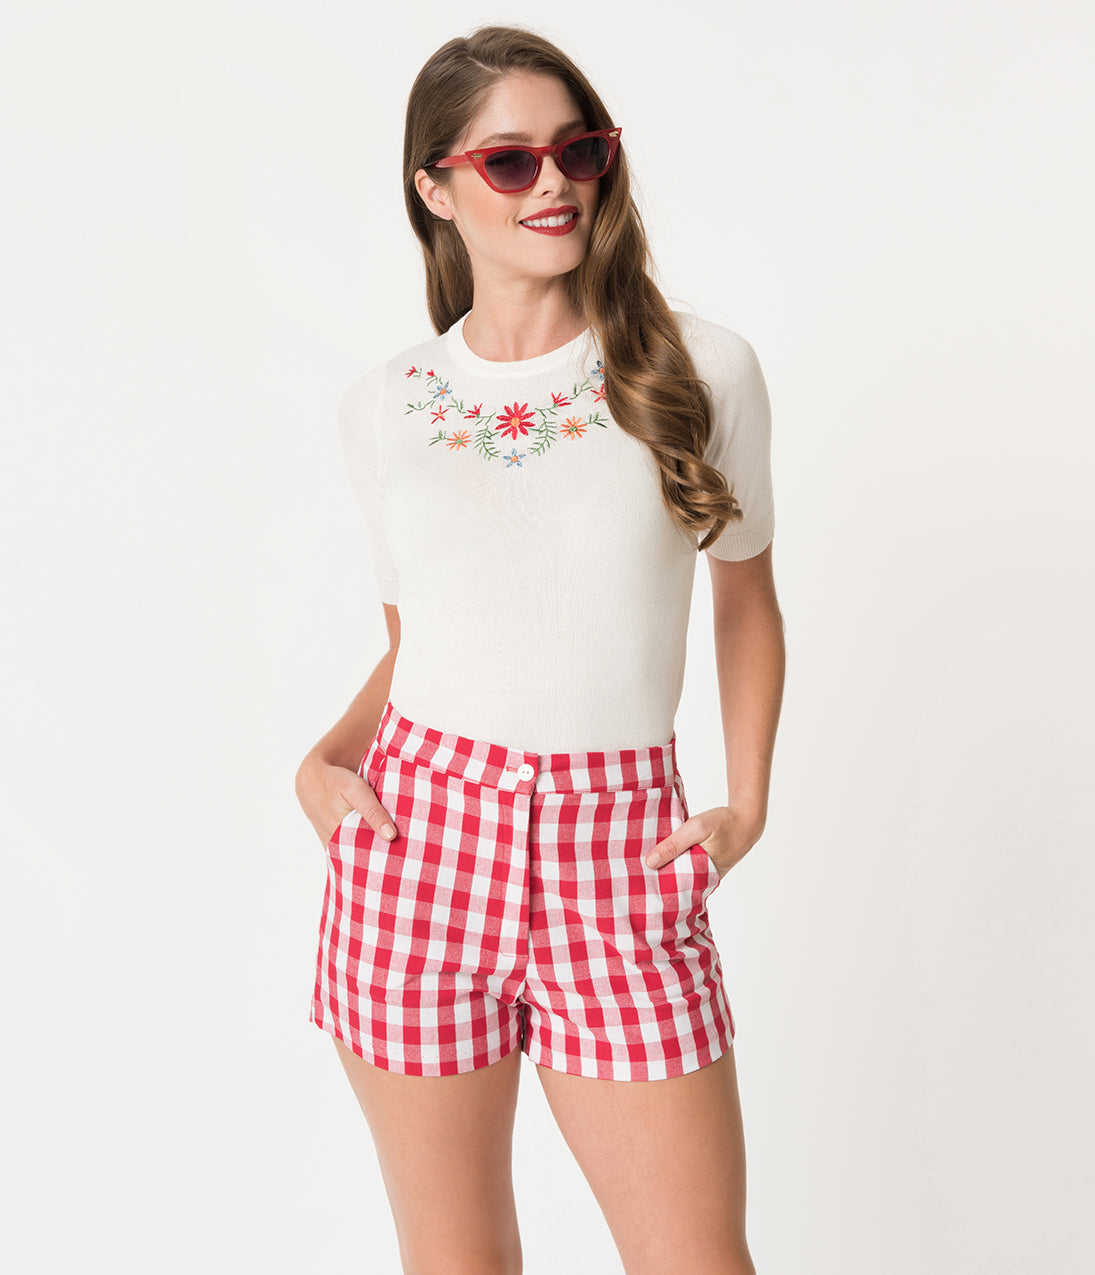 Vintage High Waisted Shorts | 1950s Pinup, Rockabilly Shorts Retro Style Red  White Gingham High Waisted Cotton Shorts $32.00 AT vintagedancer.com